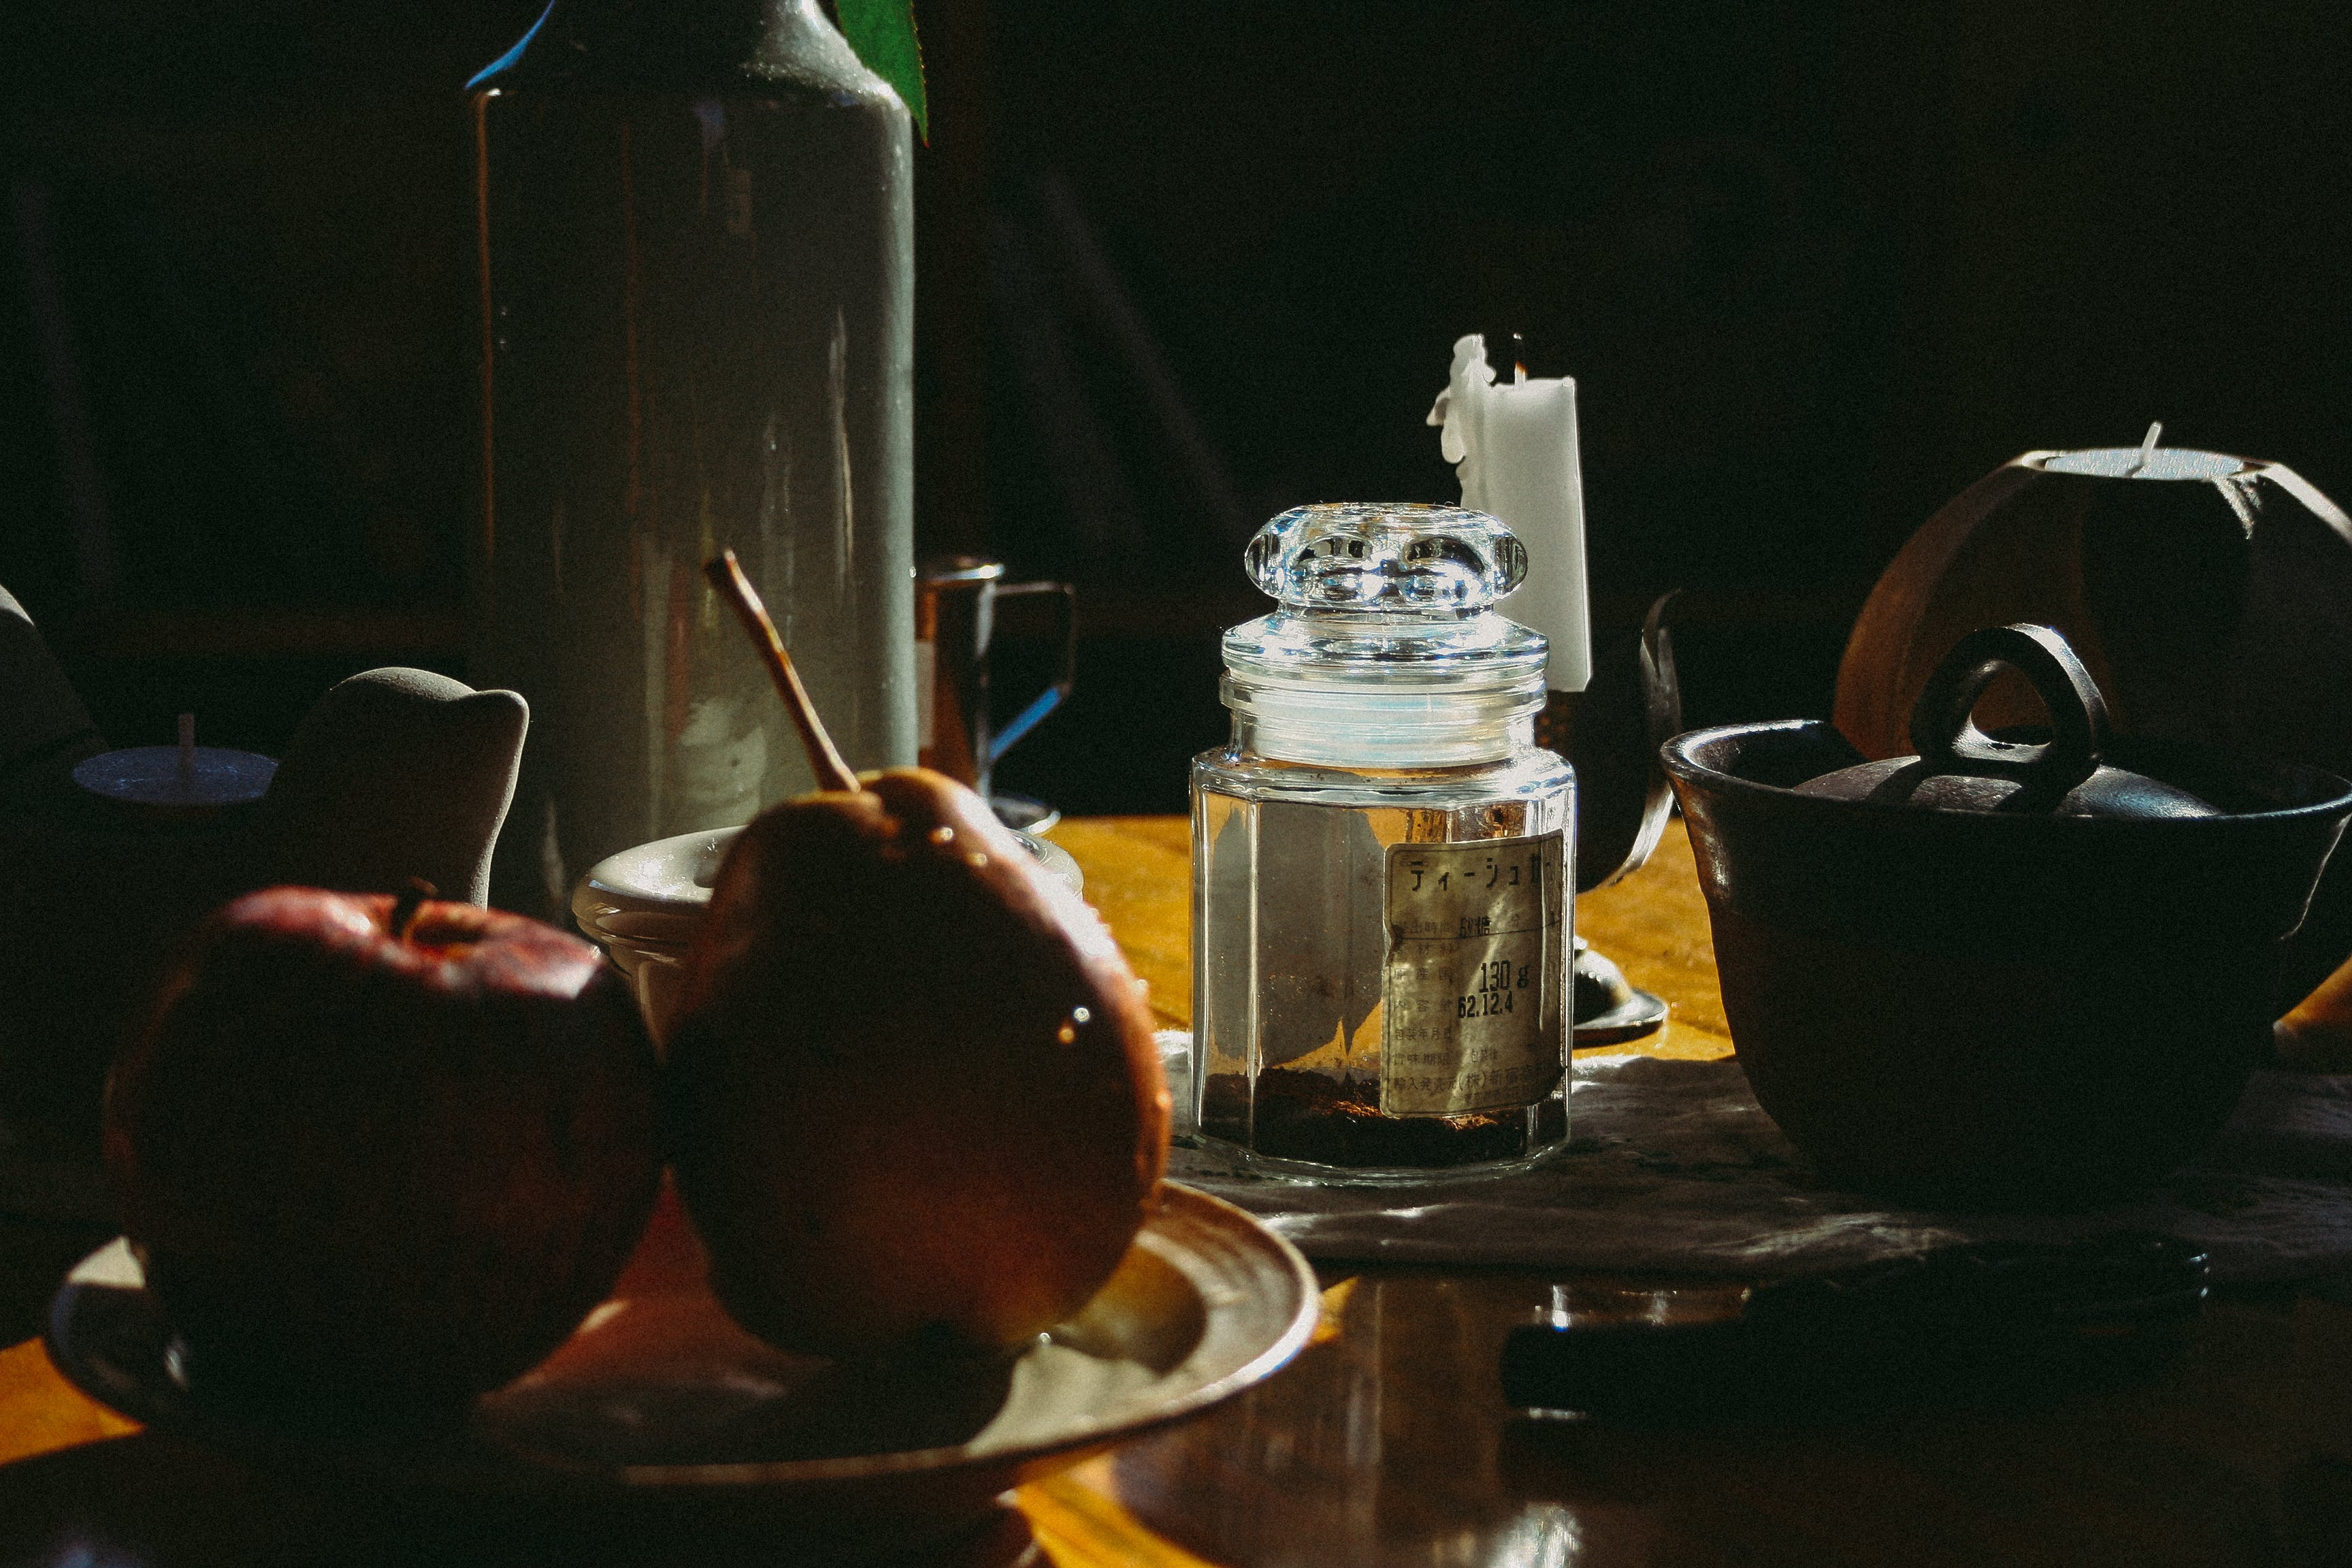 Apple and Pear Near Glass Bottle